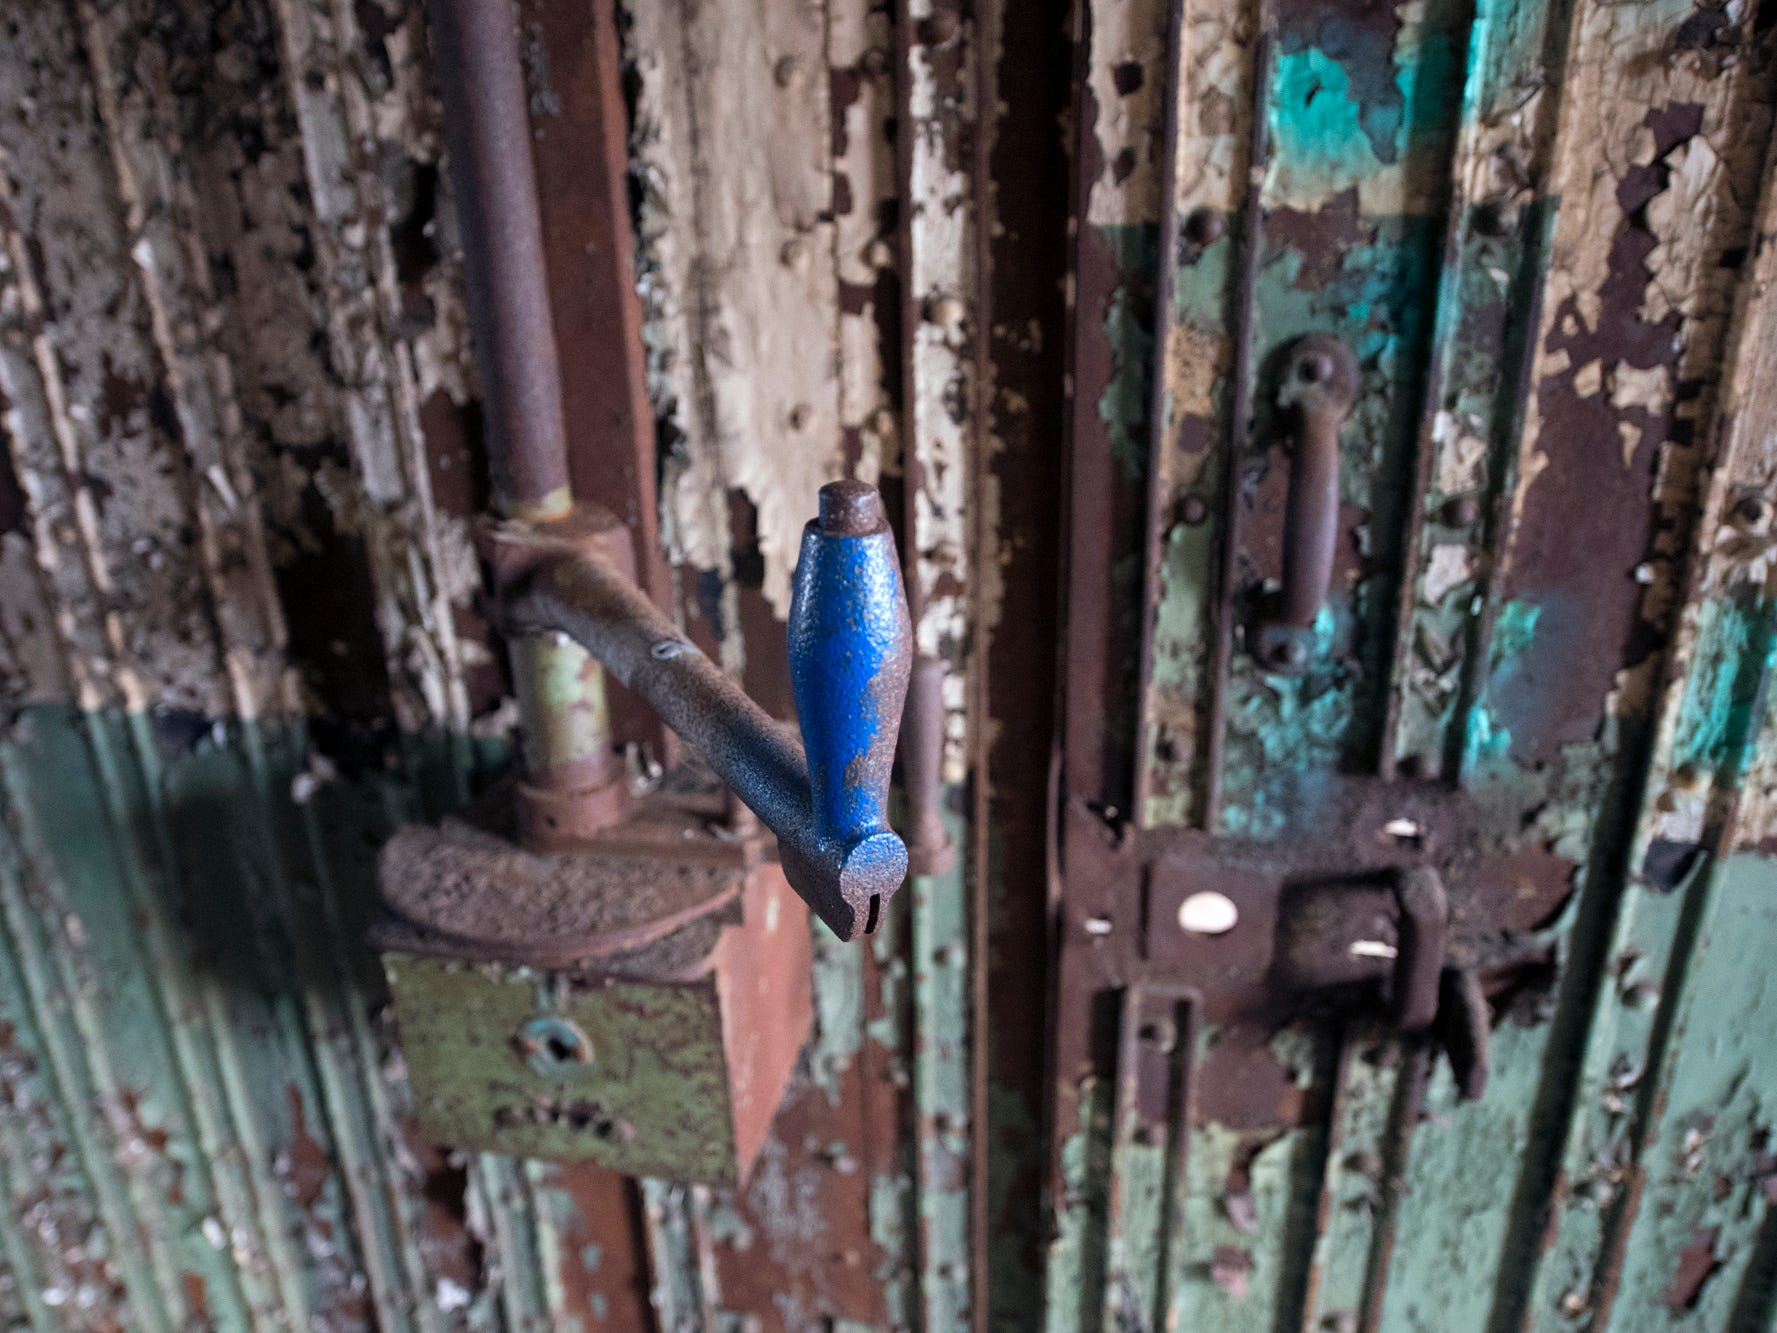 This is a mechanism that could open cells on a cell block inside the old York County Prison.